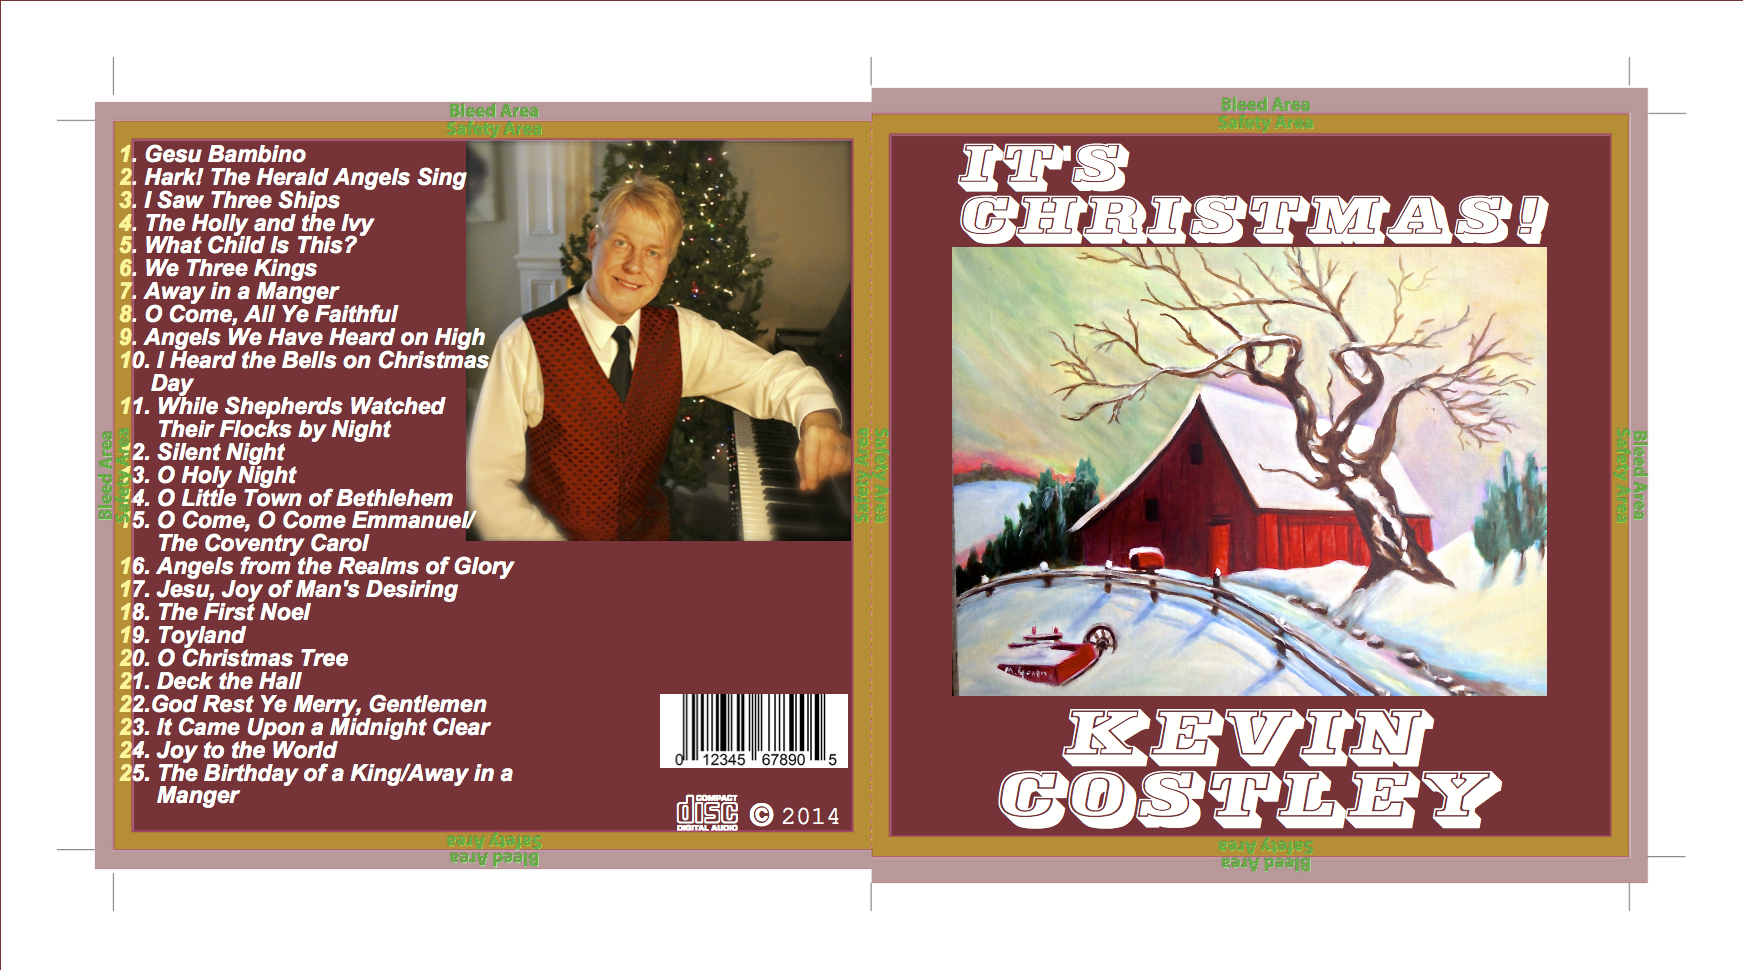 """It's Christmas!"", an album for the holidays. Find out how to get your own copy by clicking on, ""Order CD's"" on the left hand side of the page."